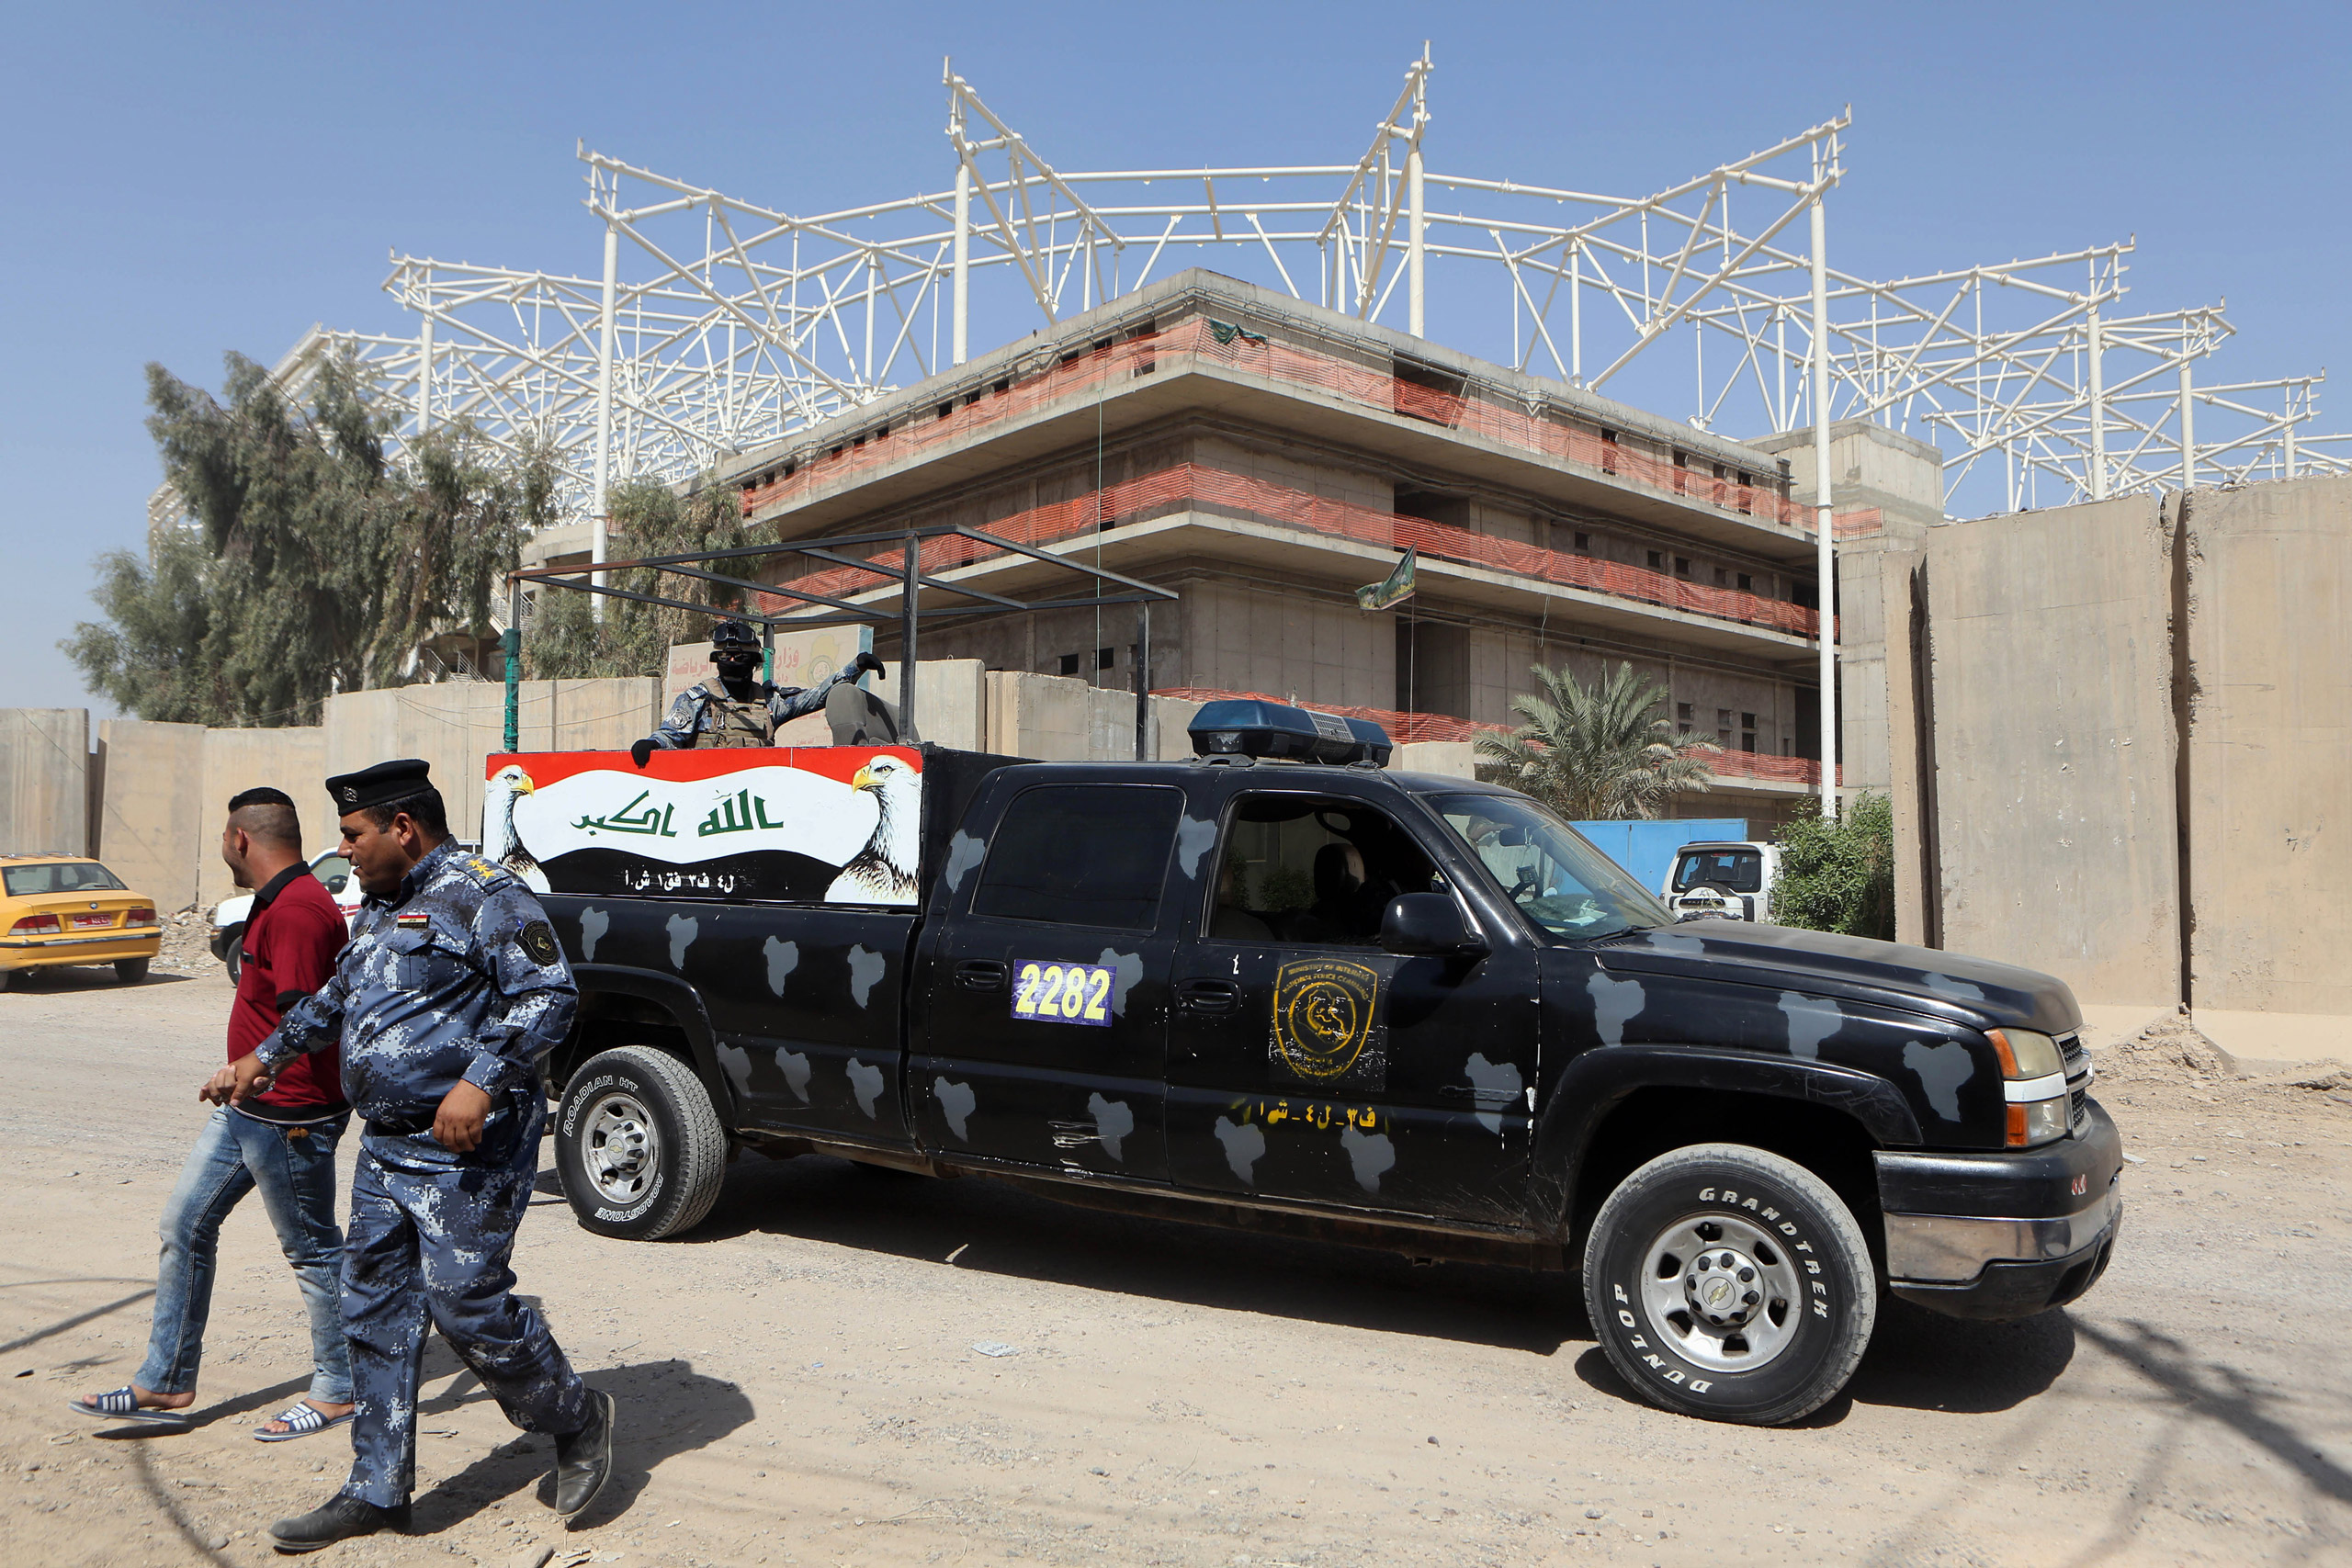 Iraqi security forces guard the entrance to a sports complex where 18 Turkish workers were kidnapped by masked men in military uniforms, according to Iraqi security officials, in Baghdad, on Sept. 2, 2015.